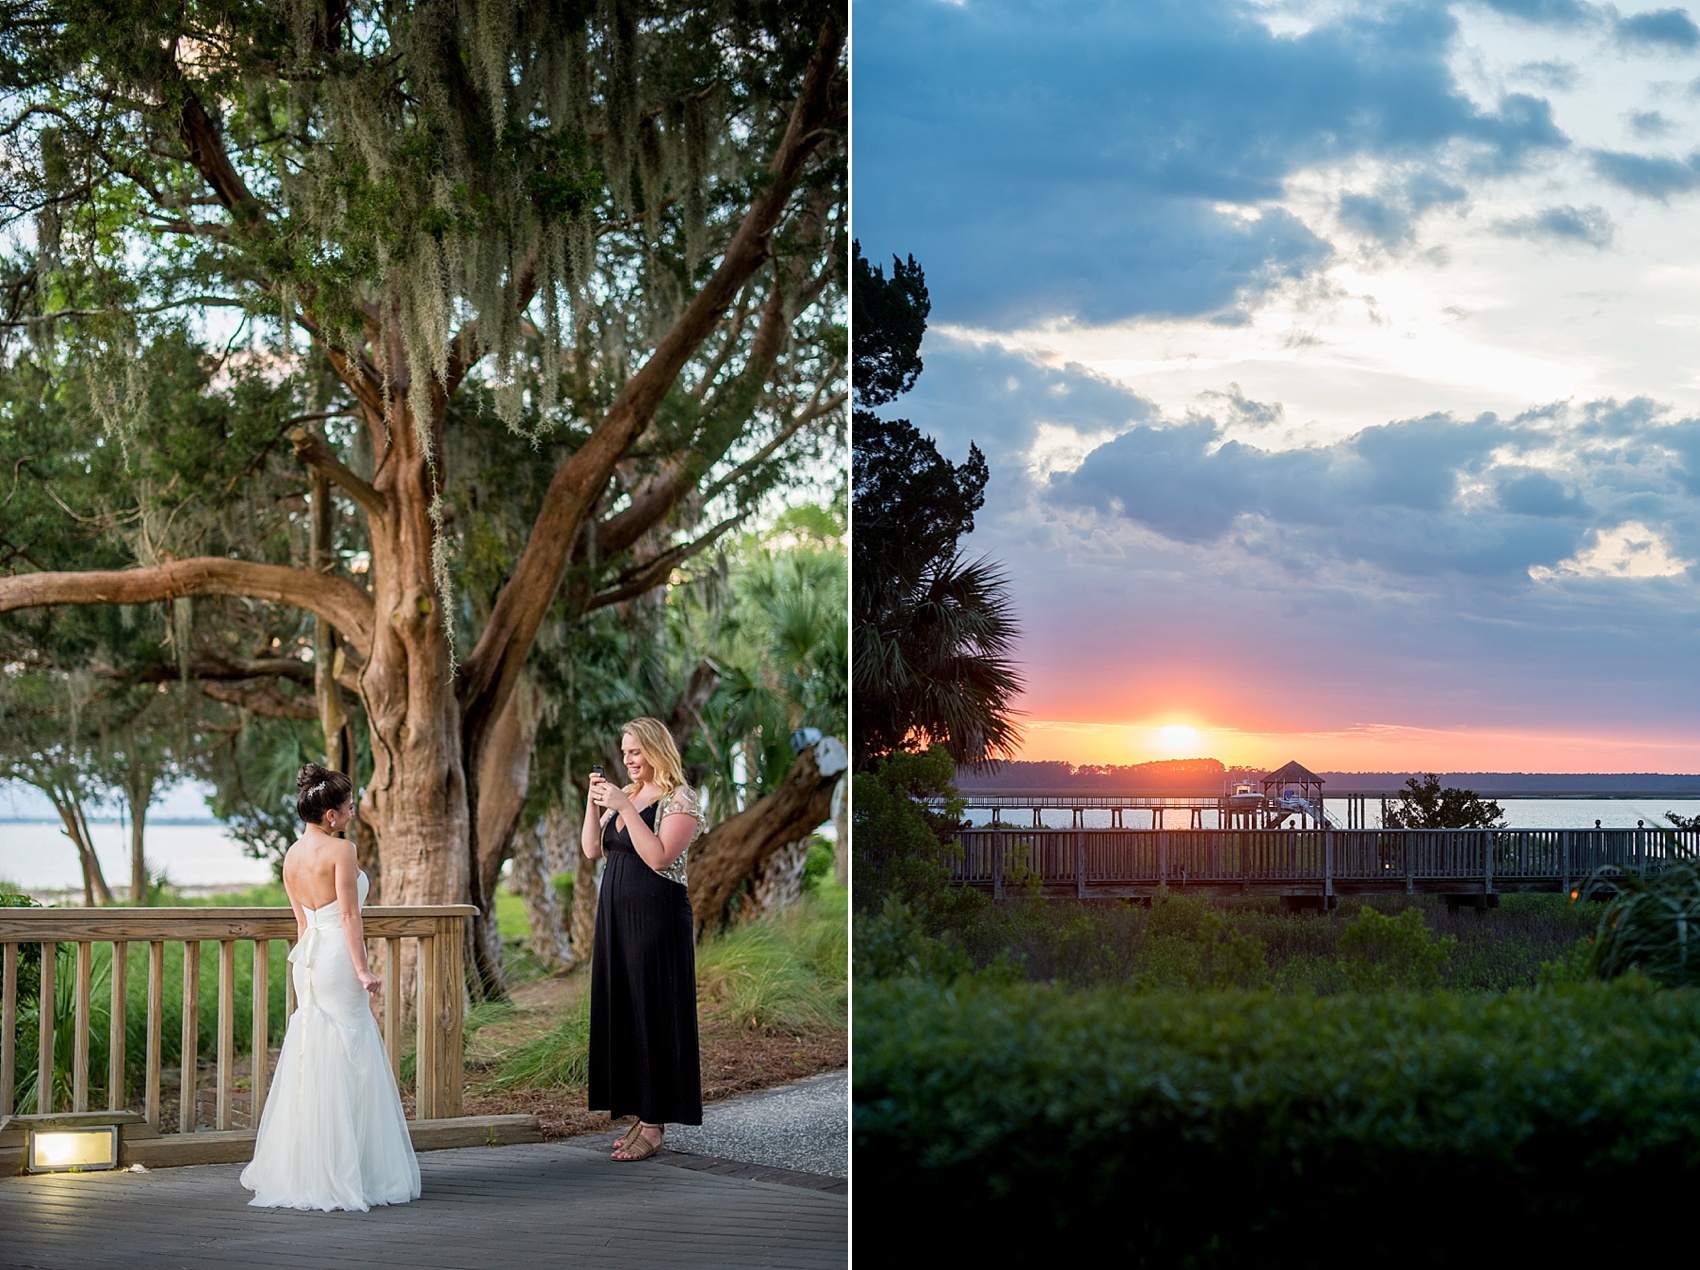 Sunset at a wedding at Haig Point in South Carolina, off the coast of Hilton Head. Photos by Mikkel Paige Photography.